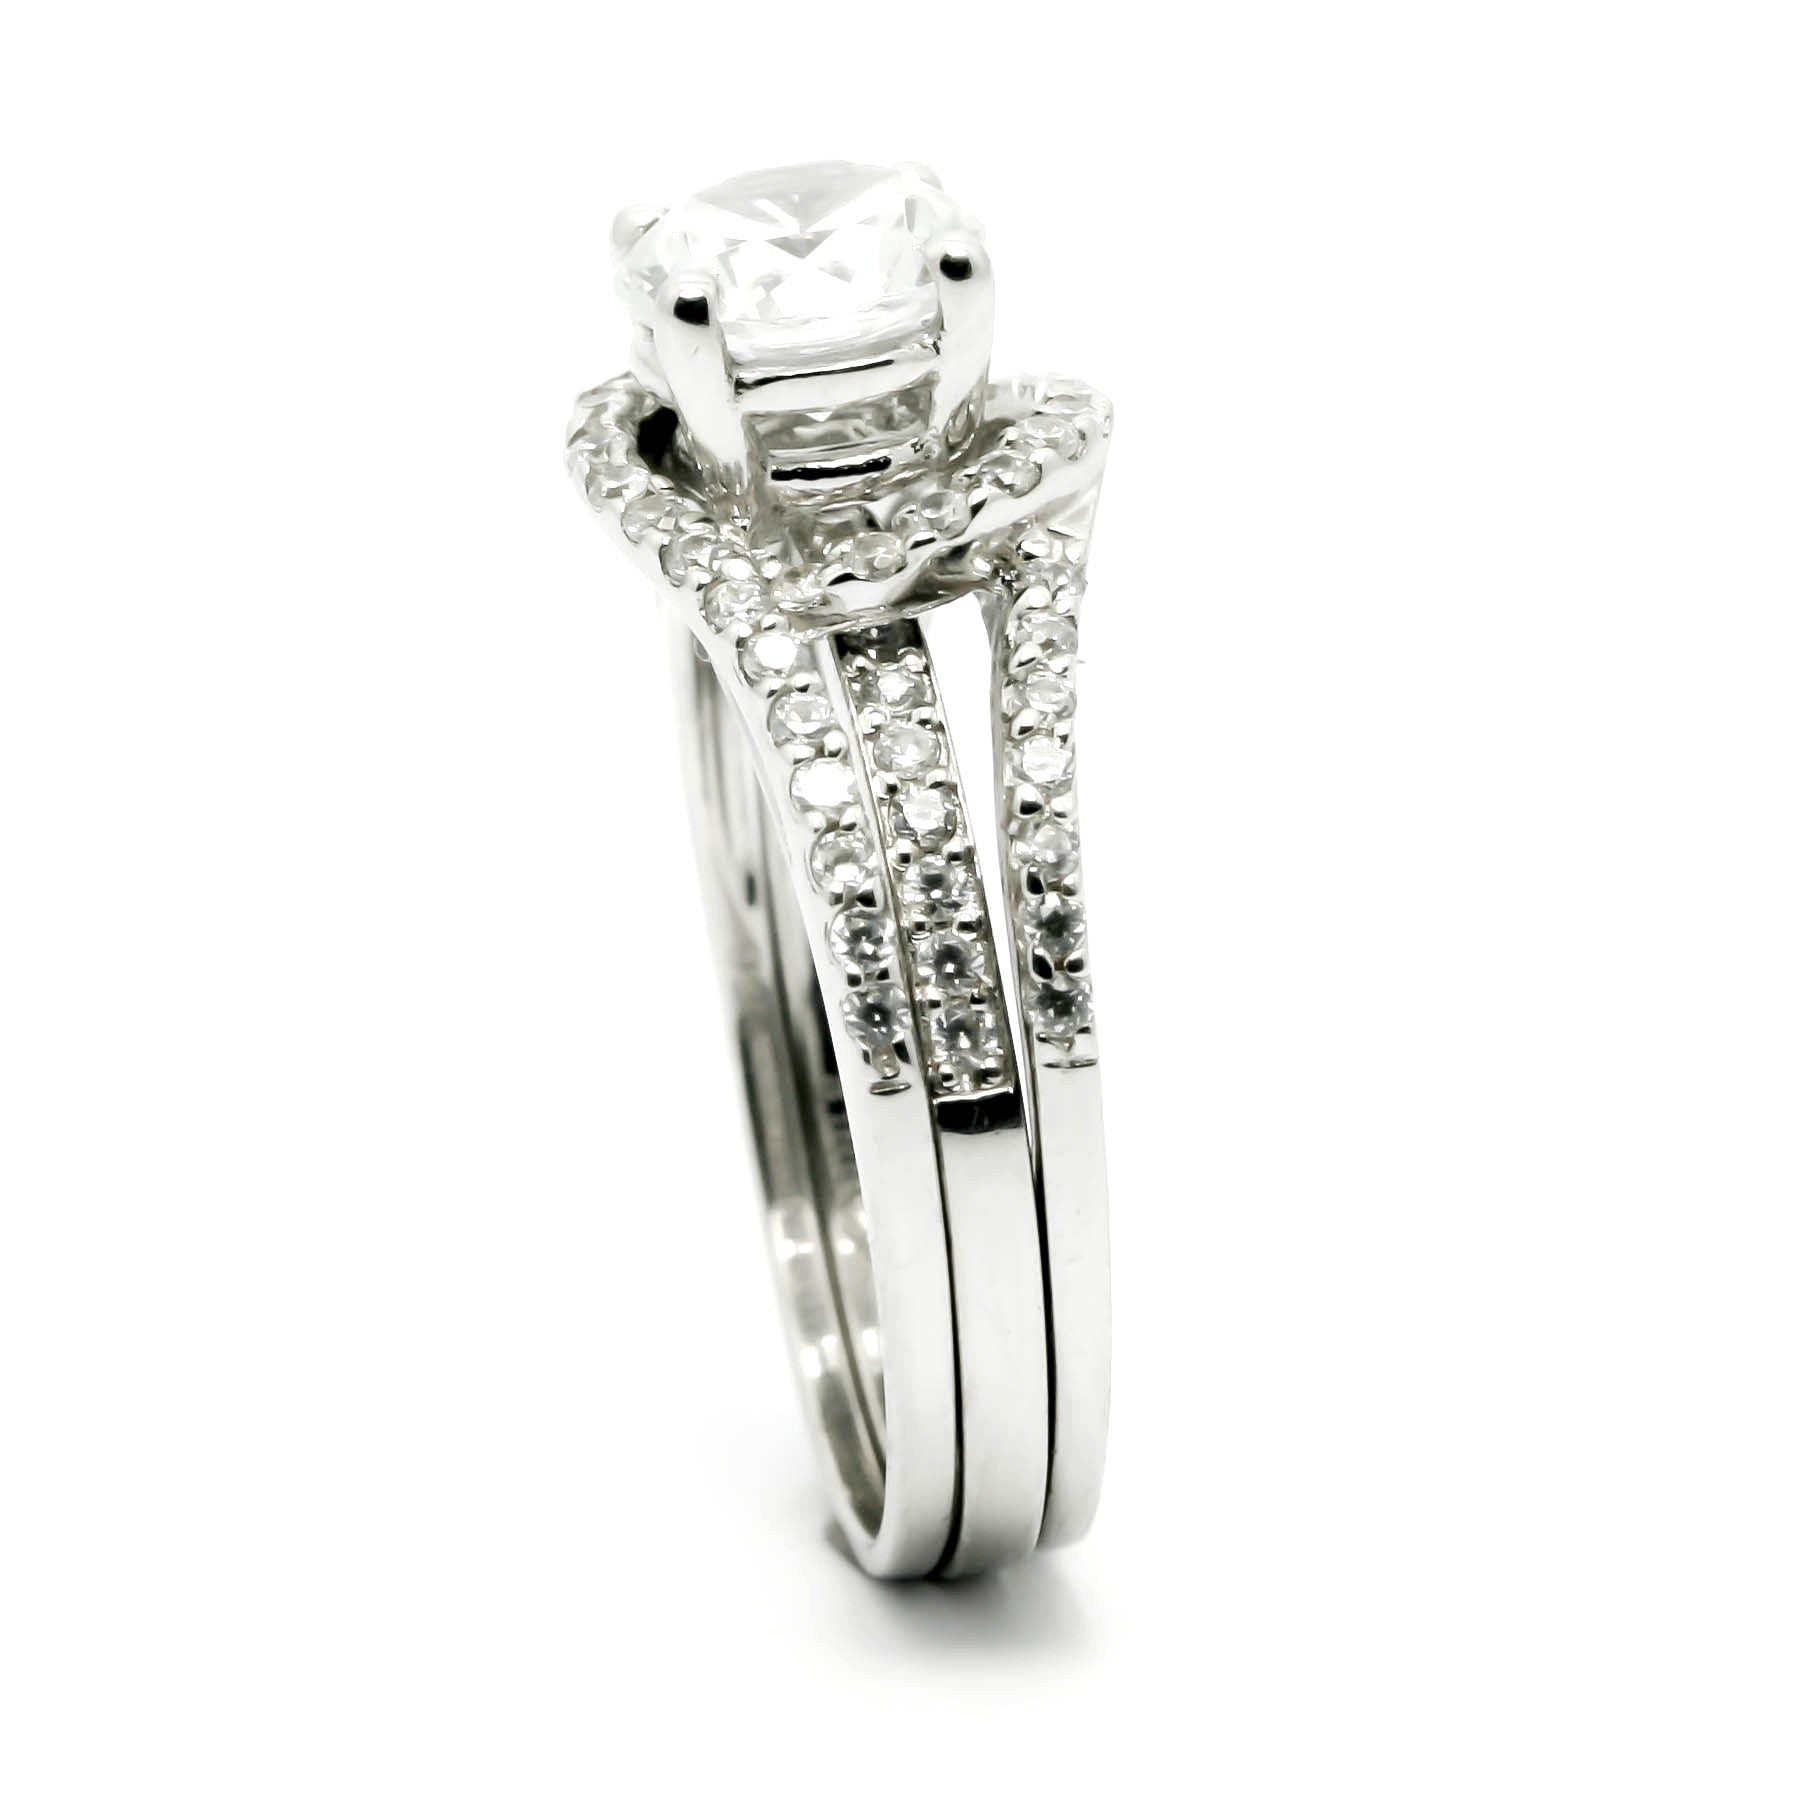 Semi Mount Floating Halo Engagement Ring With .47 Carat White Diamonds, For 1-1.25 Carat Center Stone, Split Shank - Y11580SE